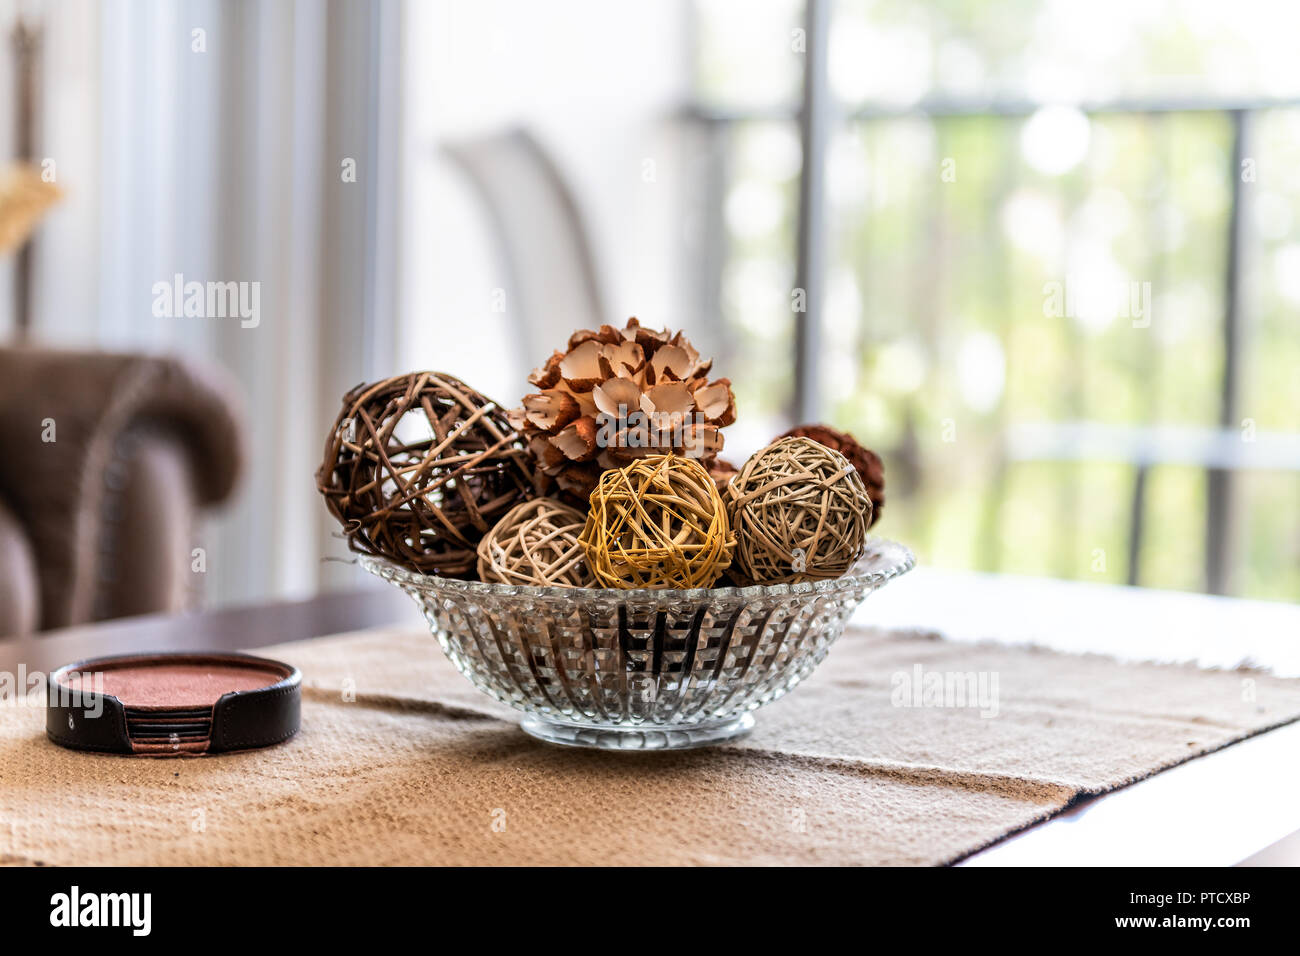 Modern, contemporary, clean decor with vase on table, tablecloths, coaster set, wicker balls and cone in apartment, home, house with bright light from - Stock Image